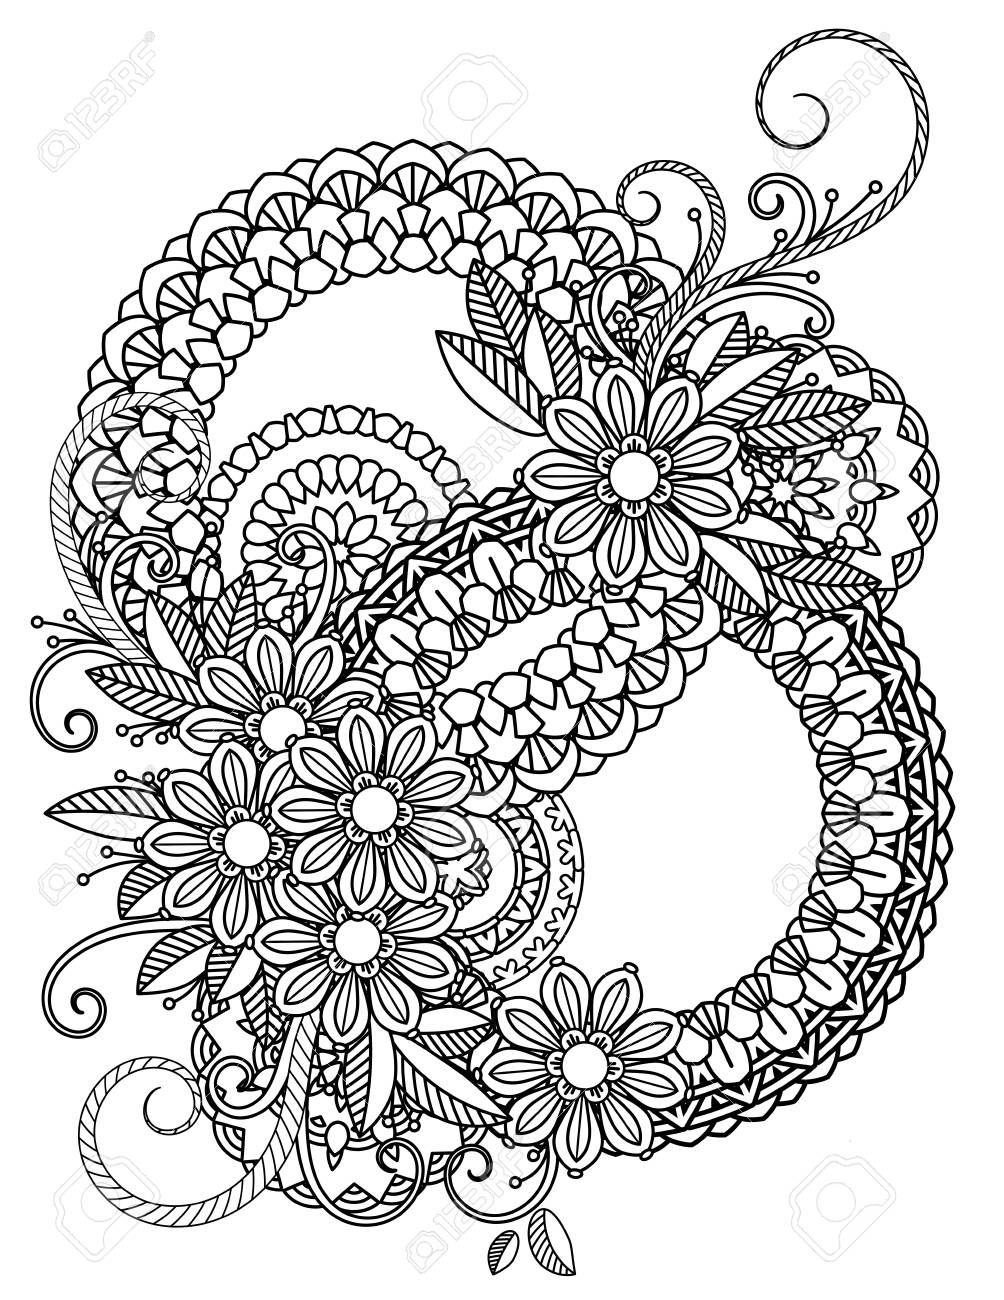 Floral mandala pattern in black and white. Adult coloring book..